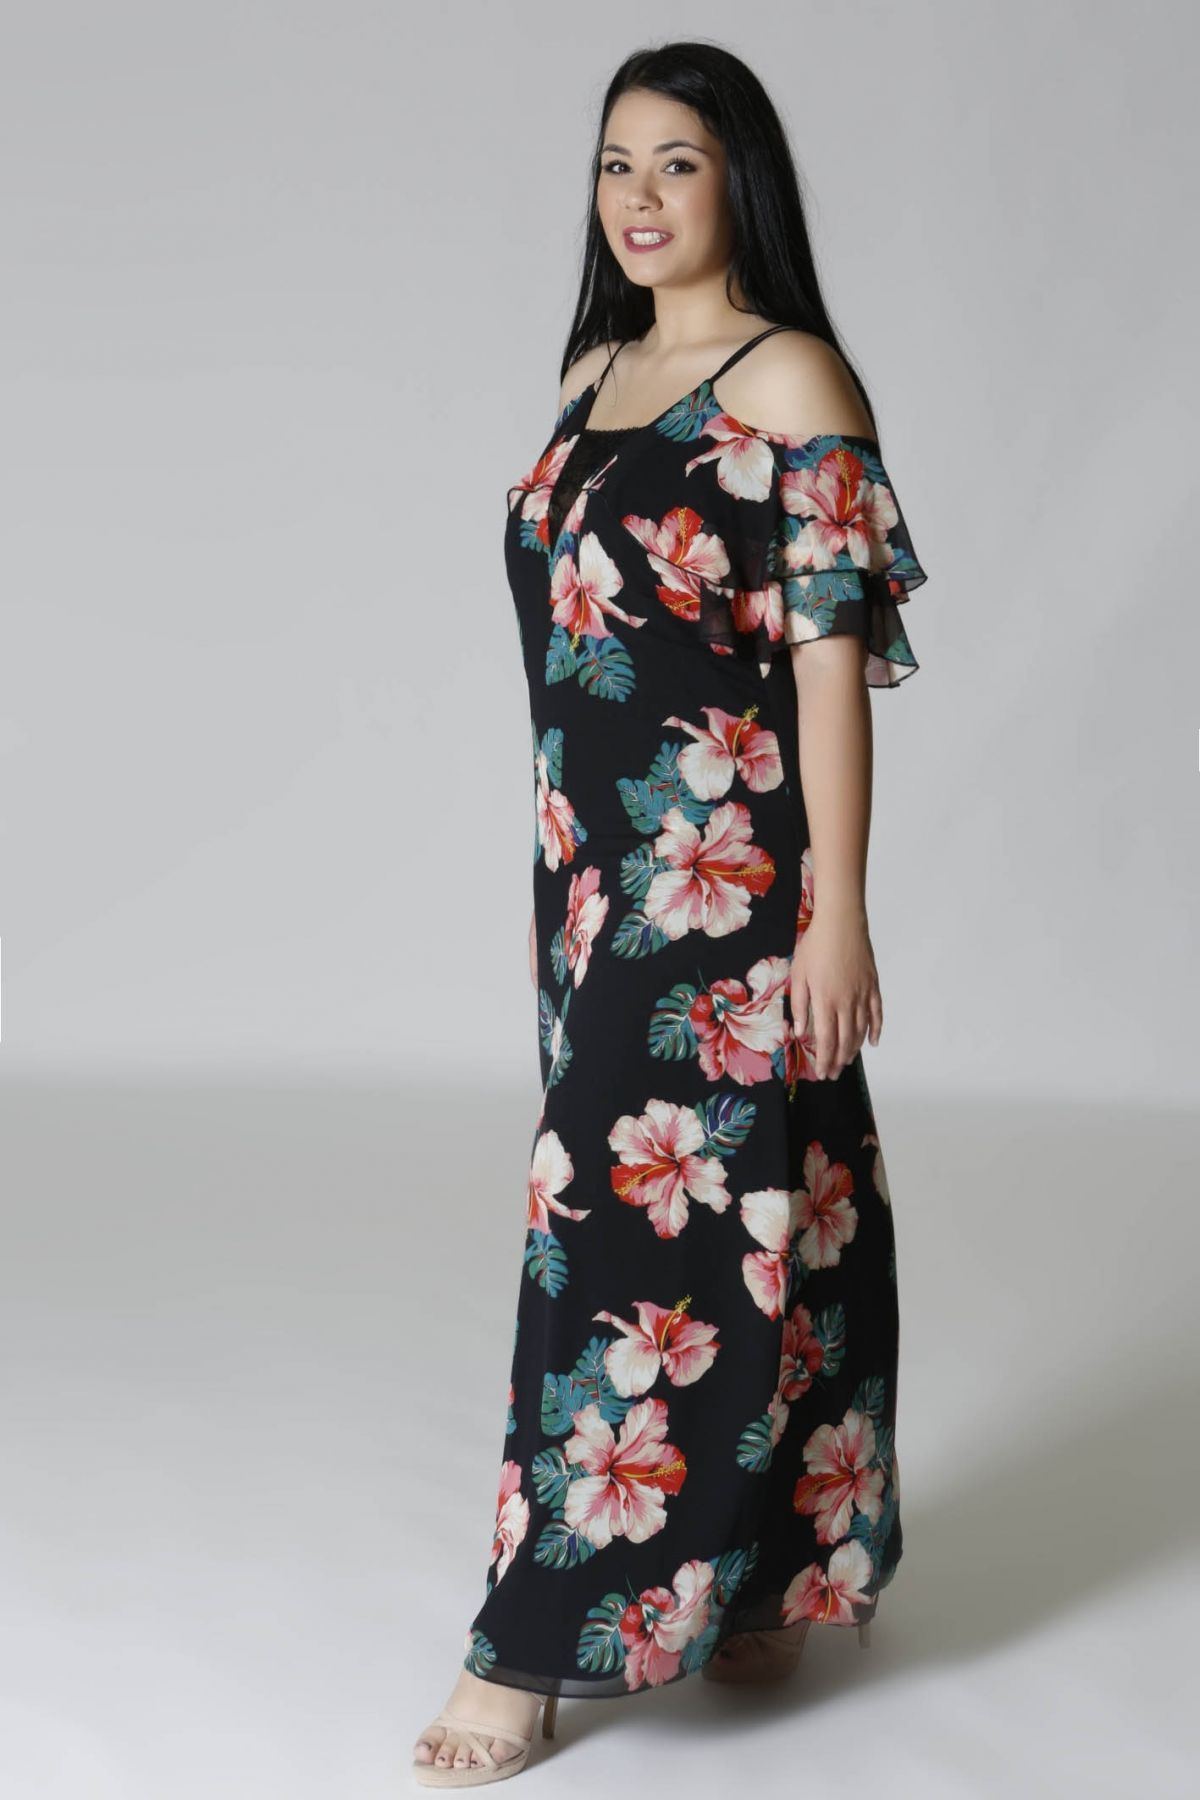 a2918e35629f Maxi φόρεμα floral cold shoulders - HappySizes